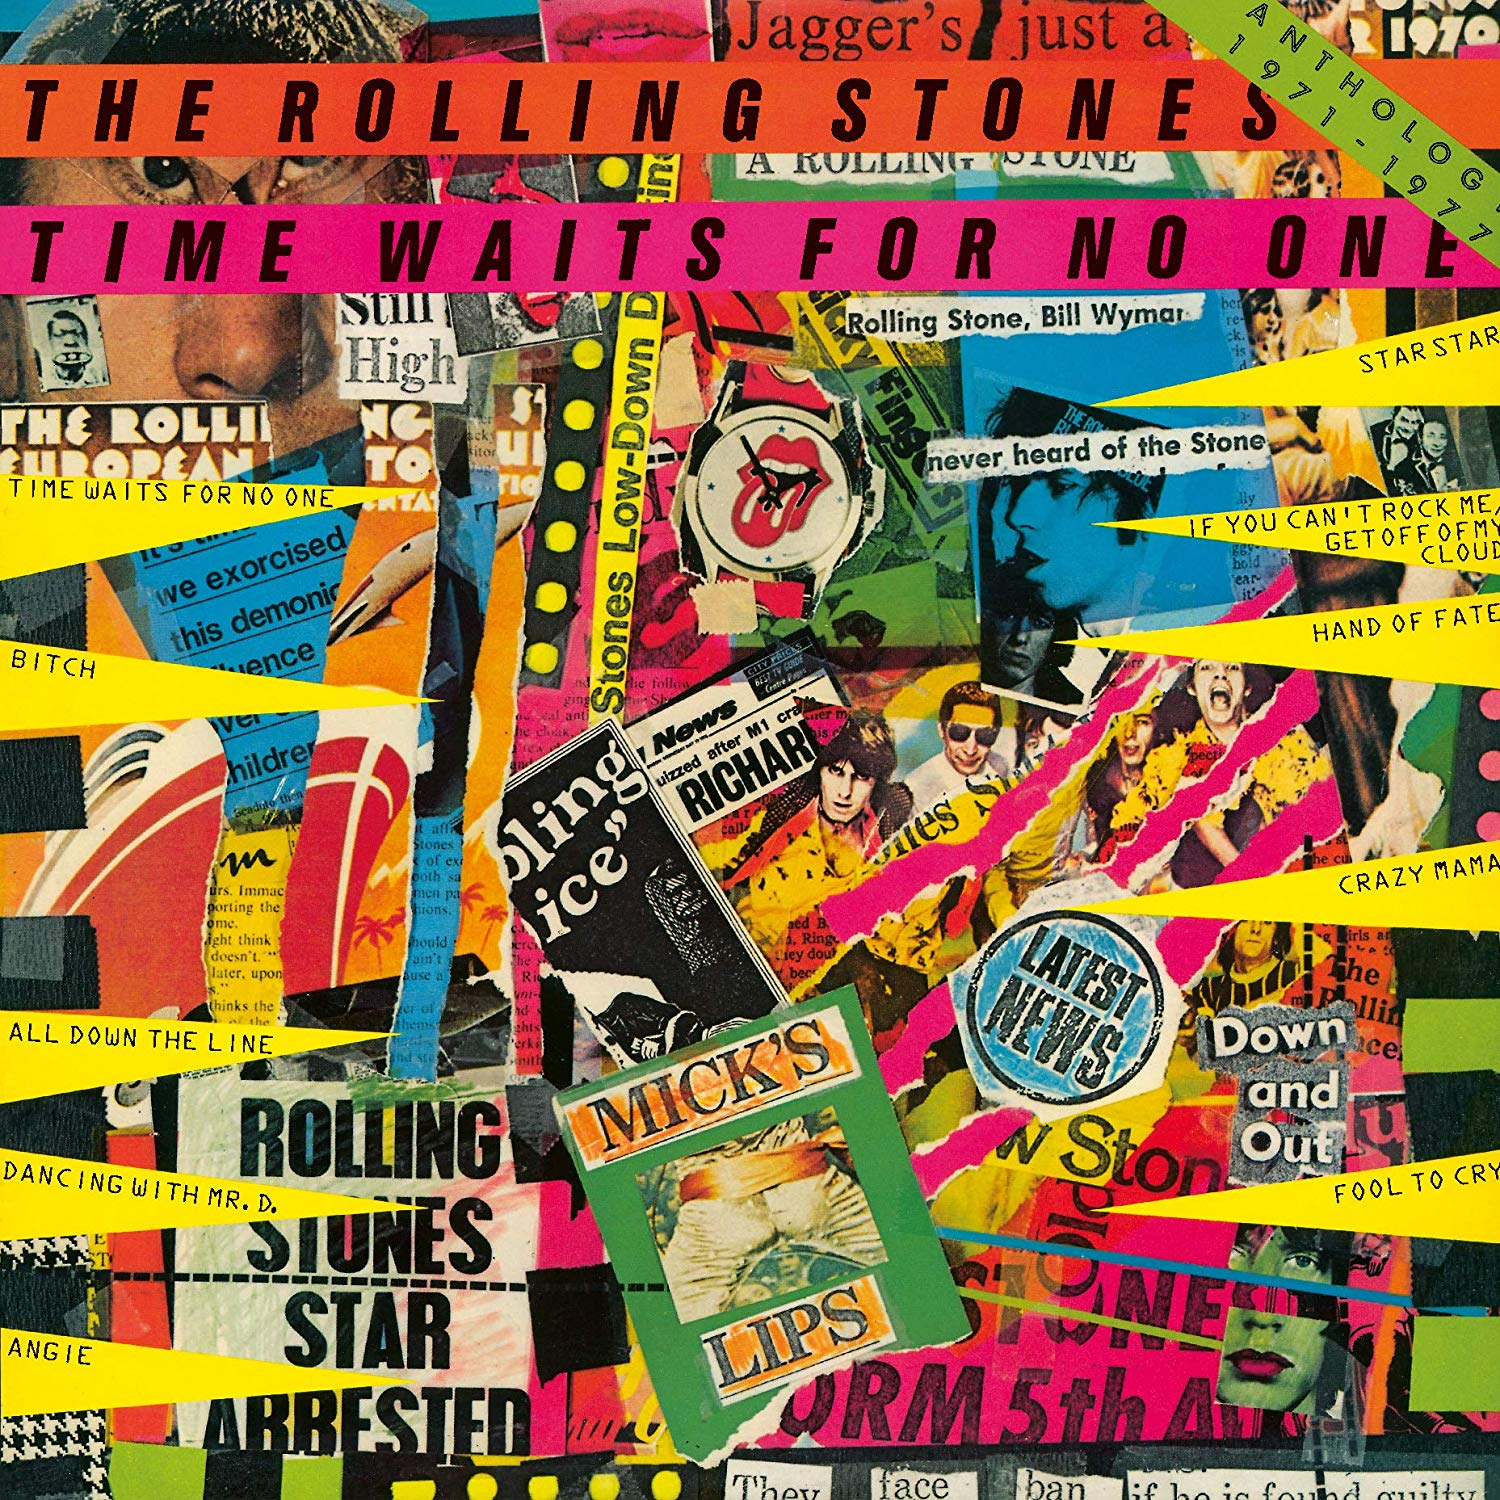 The Rolling Stones - Time Waits For No One: Anthology 1971-1977 [Super High Material CD]